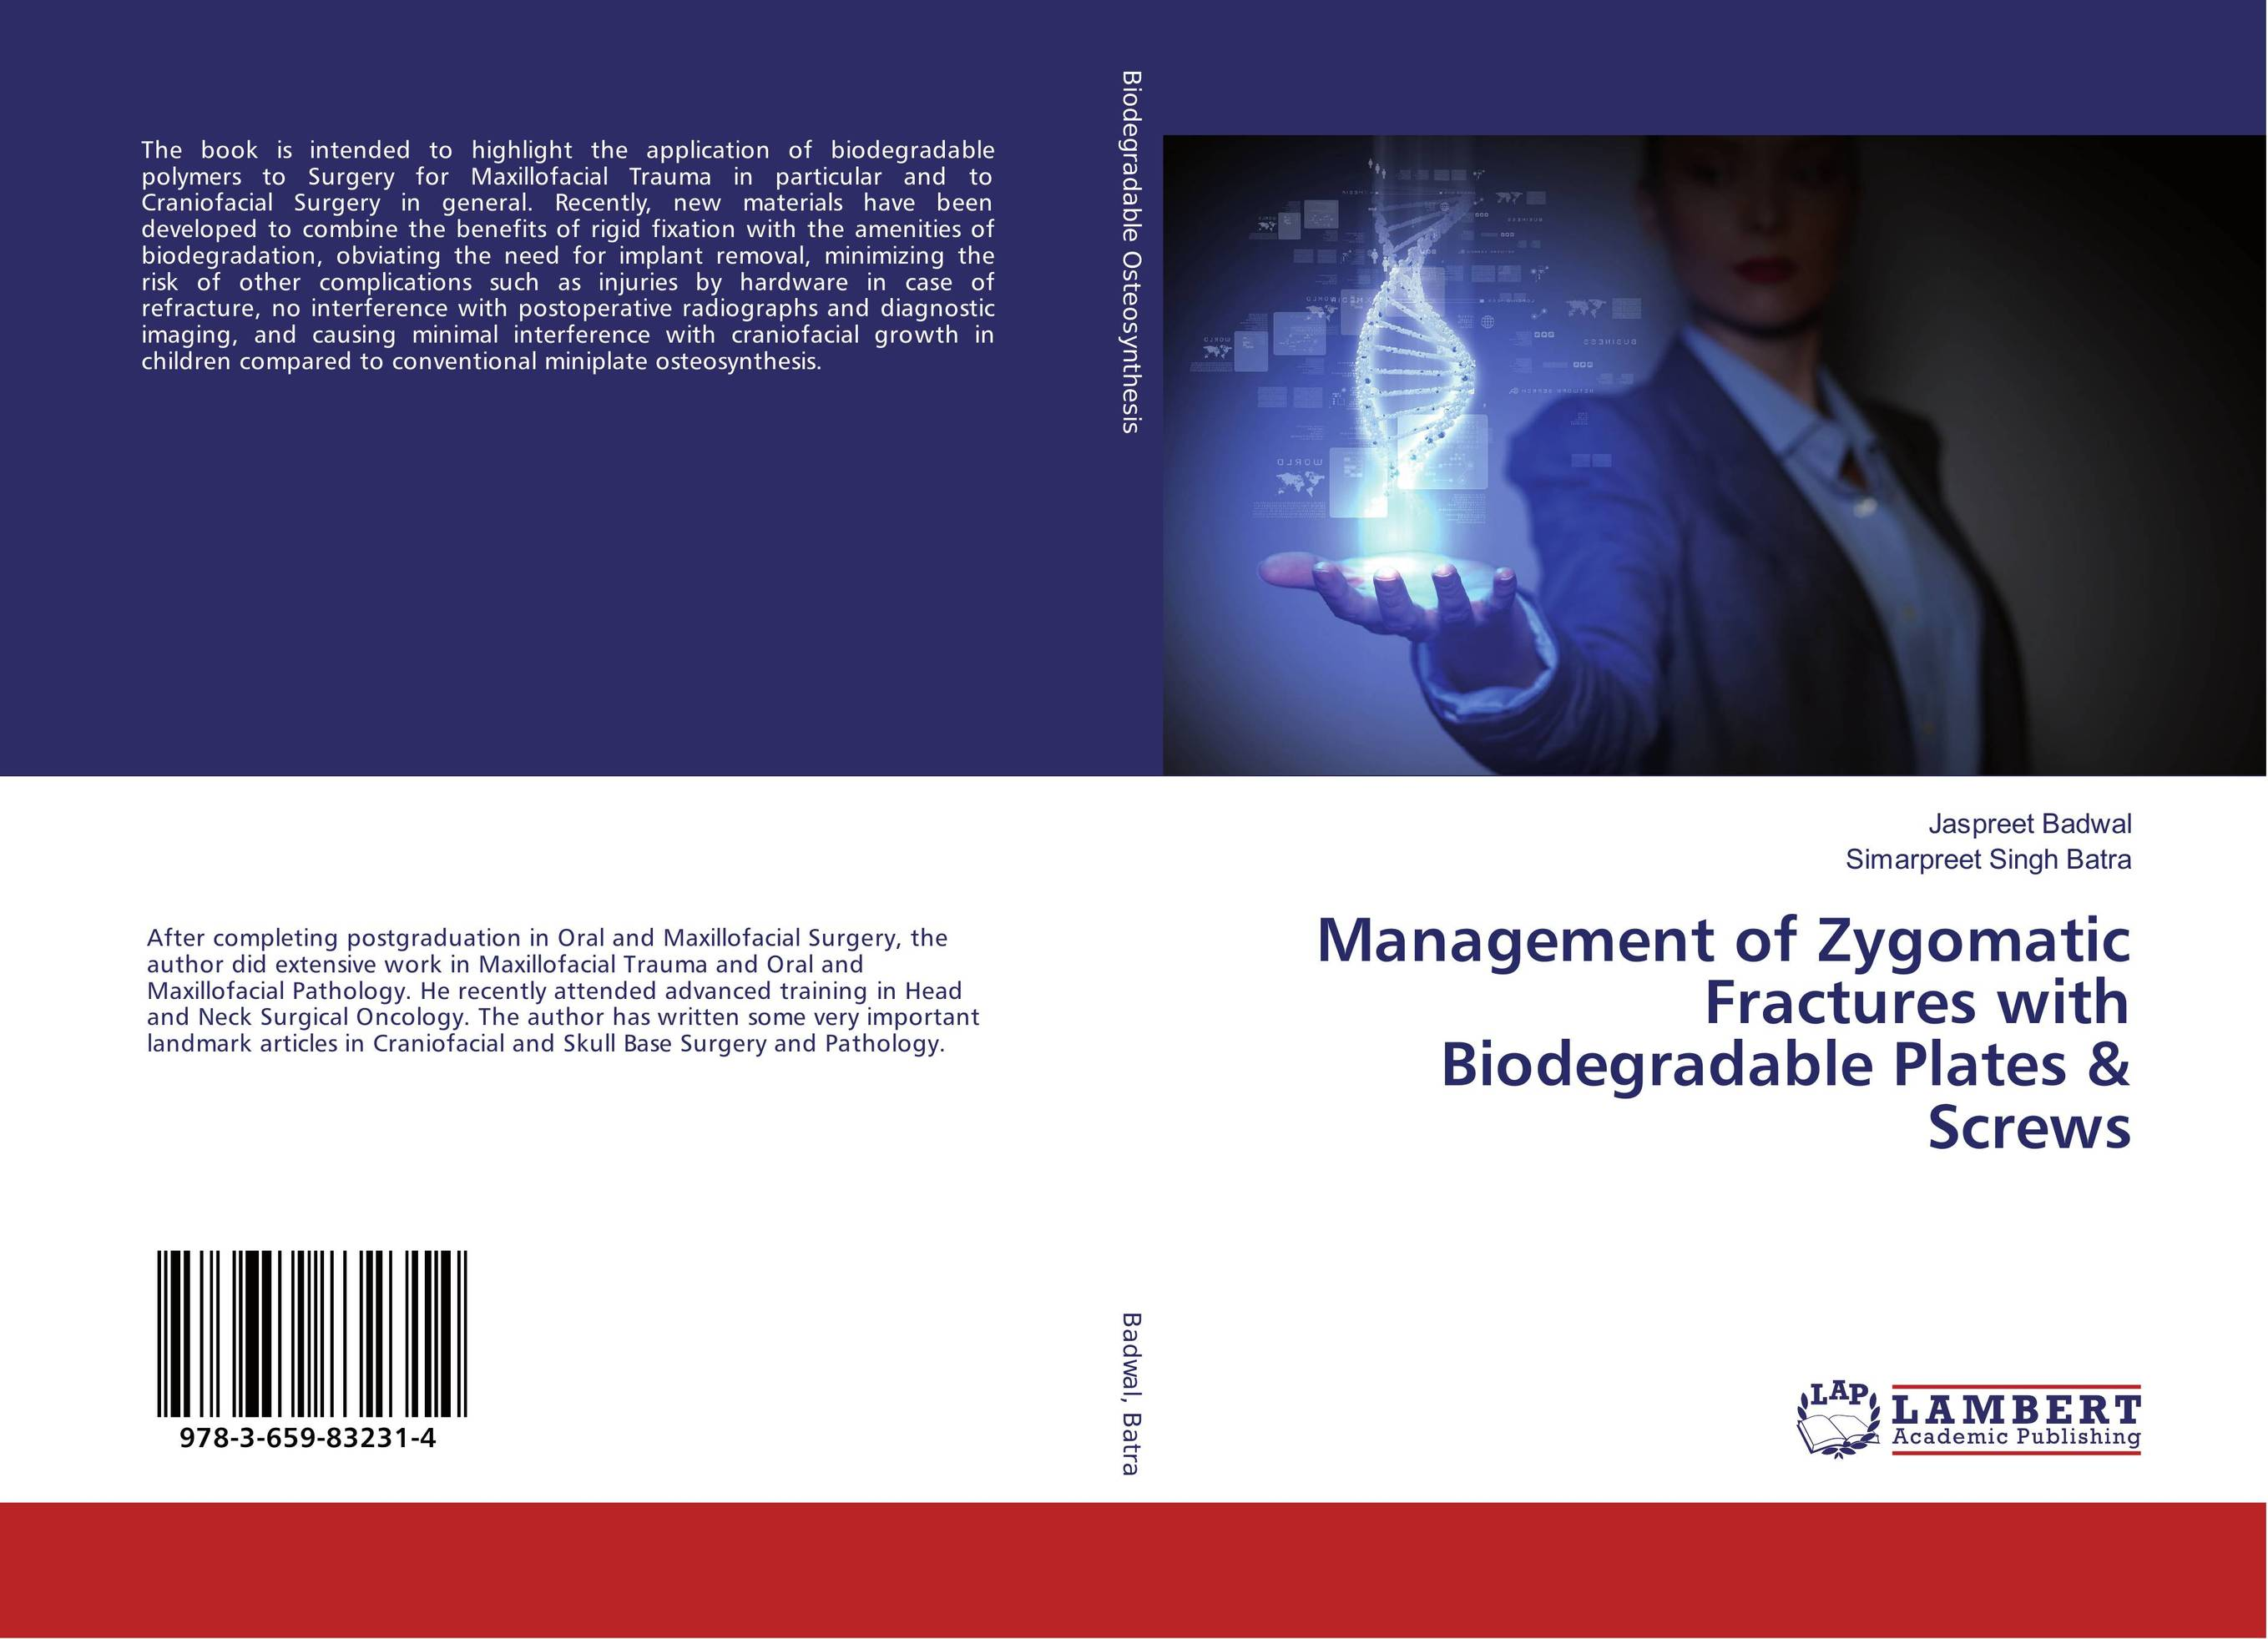 Management of Zygomatic Fractures with Biodegradable Plates & Screws cryosurgery in oral and maxillofacial surgery